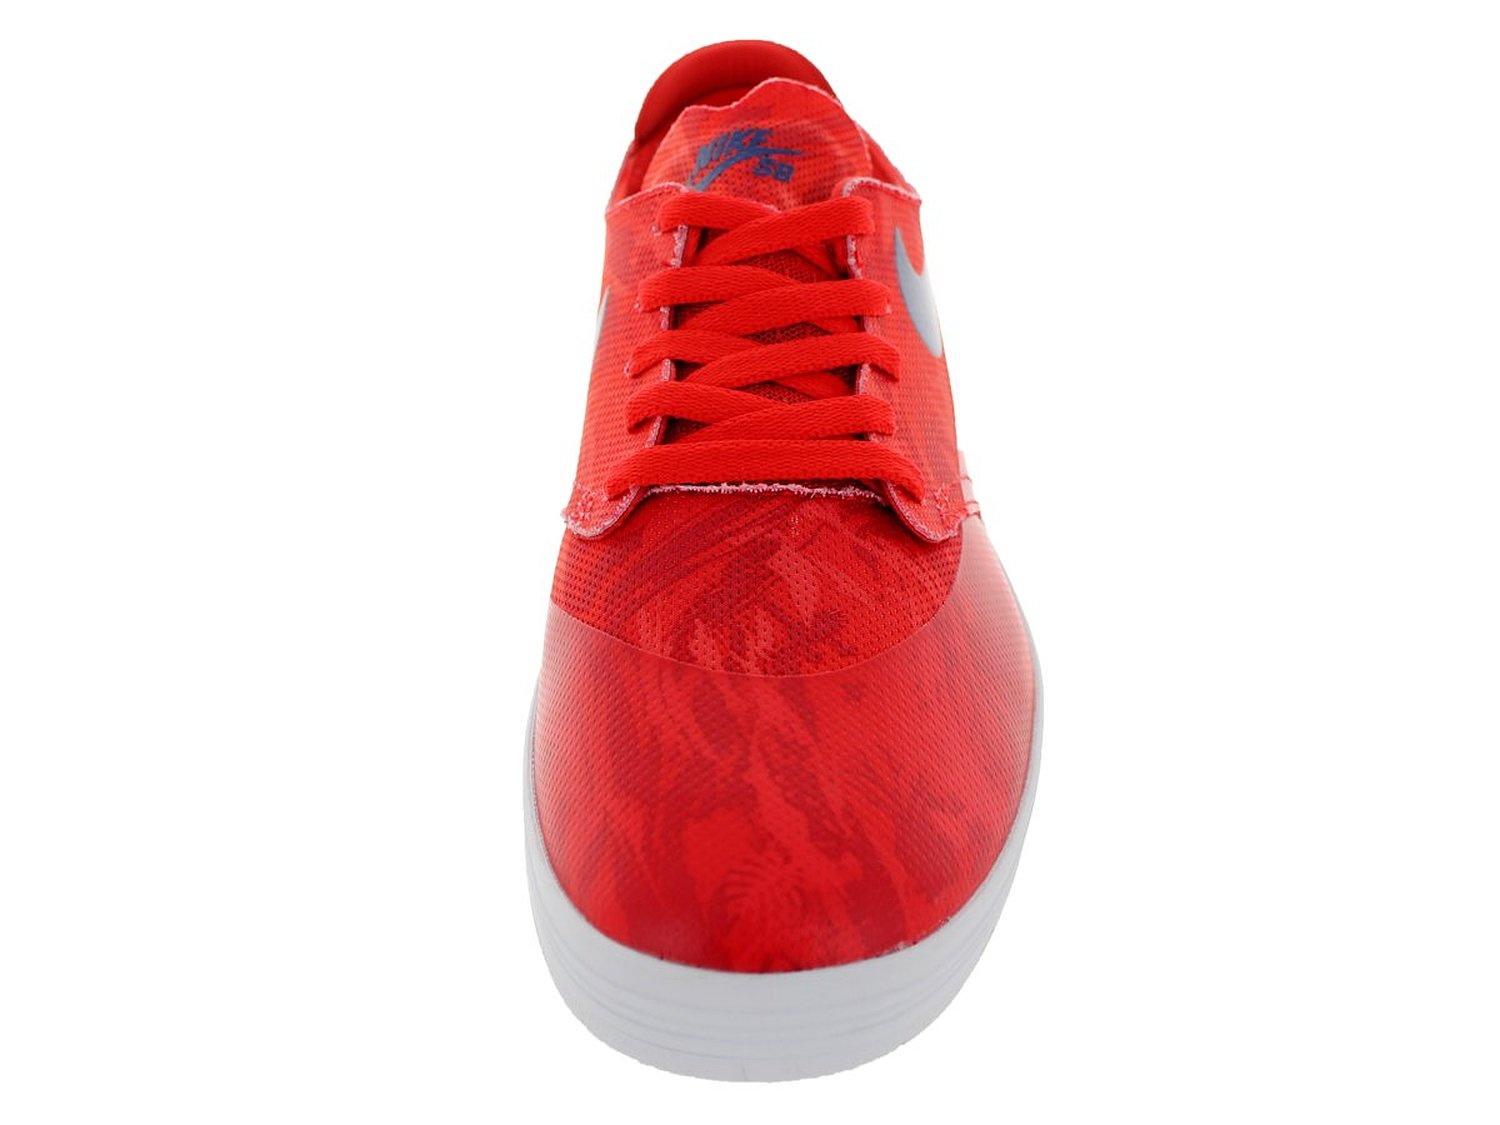 93065df1f45e Nike Men s Lunar Oneshot SB Skating Shoe-Lt Crimson Deep Royal-10 ...